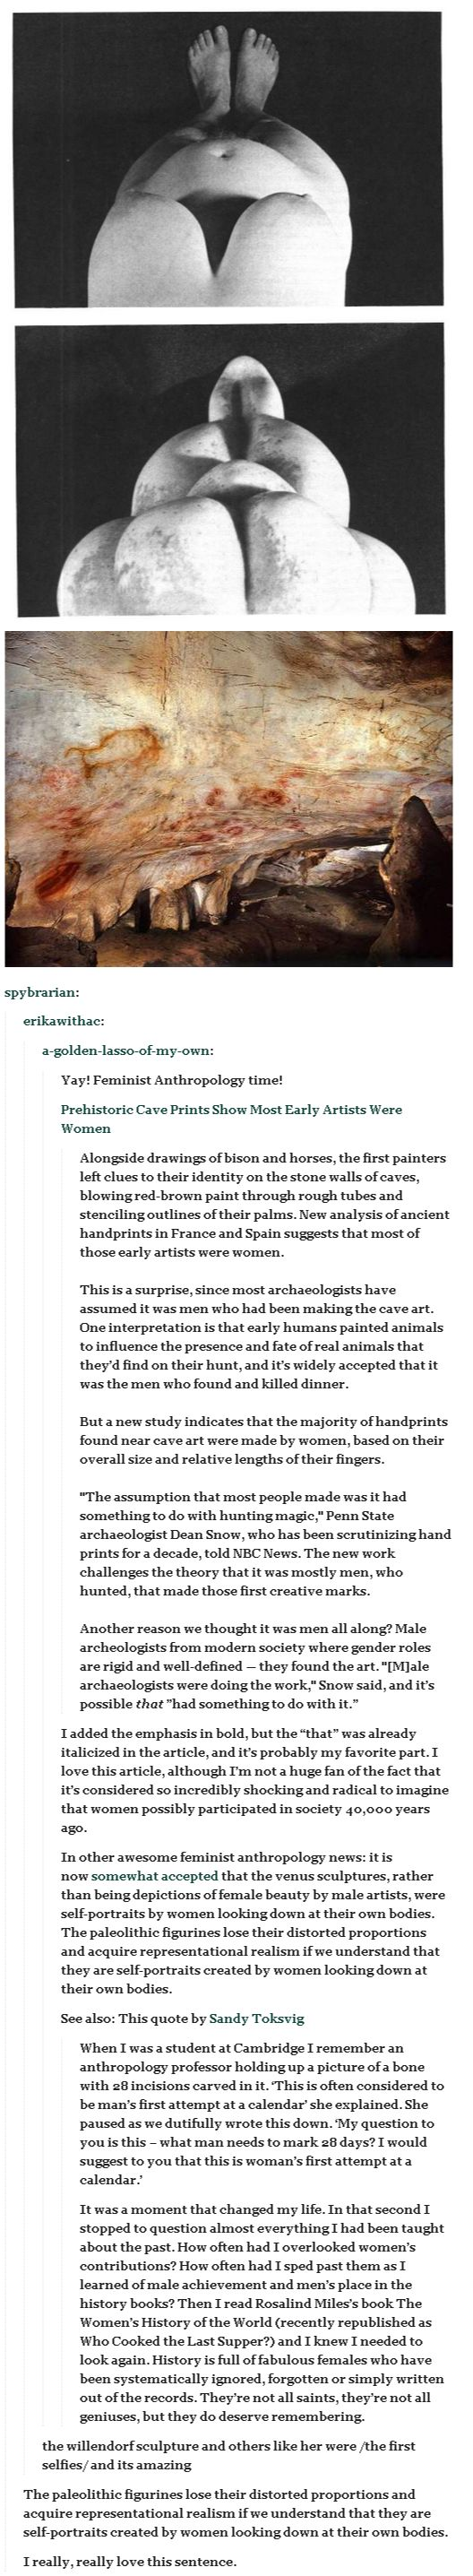 http://www.nbcnews.com/science/prehistoric-cave-prints-show-most-early-artists-were-women-8C11391268 Women in history